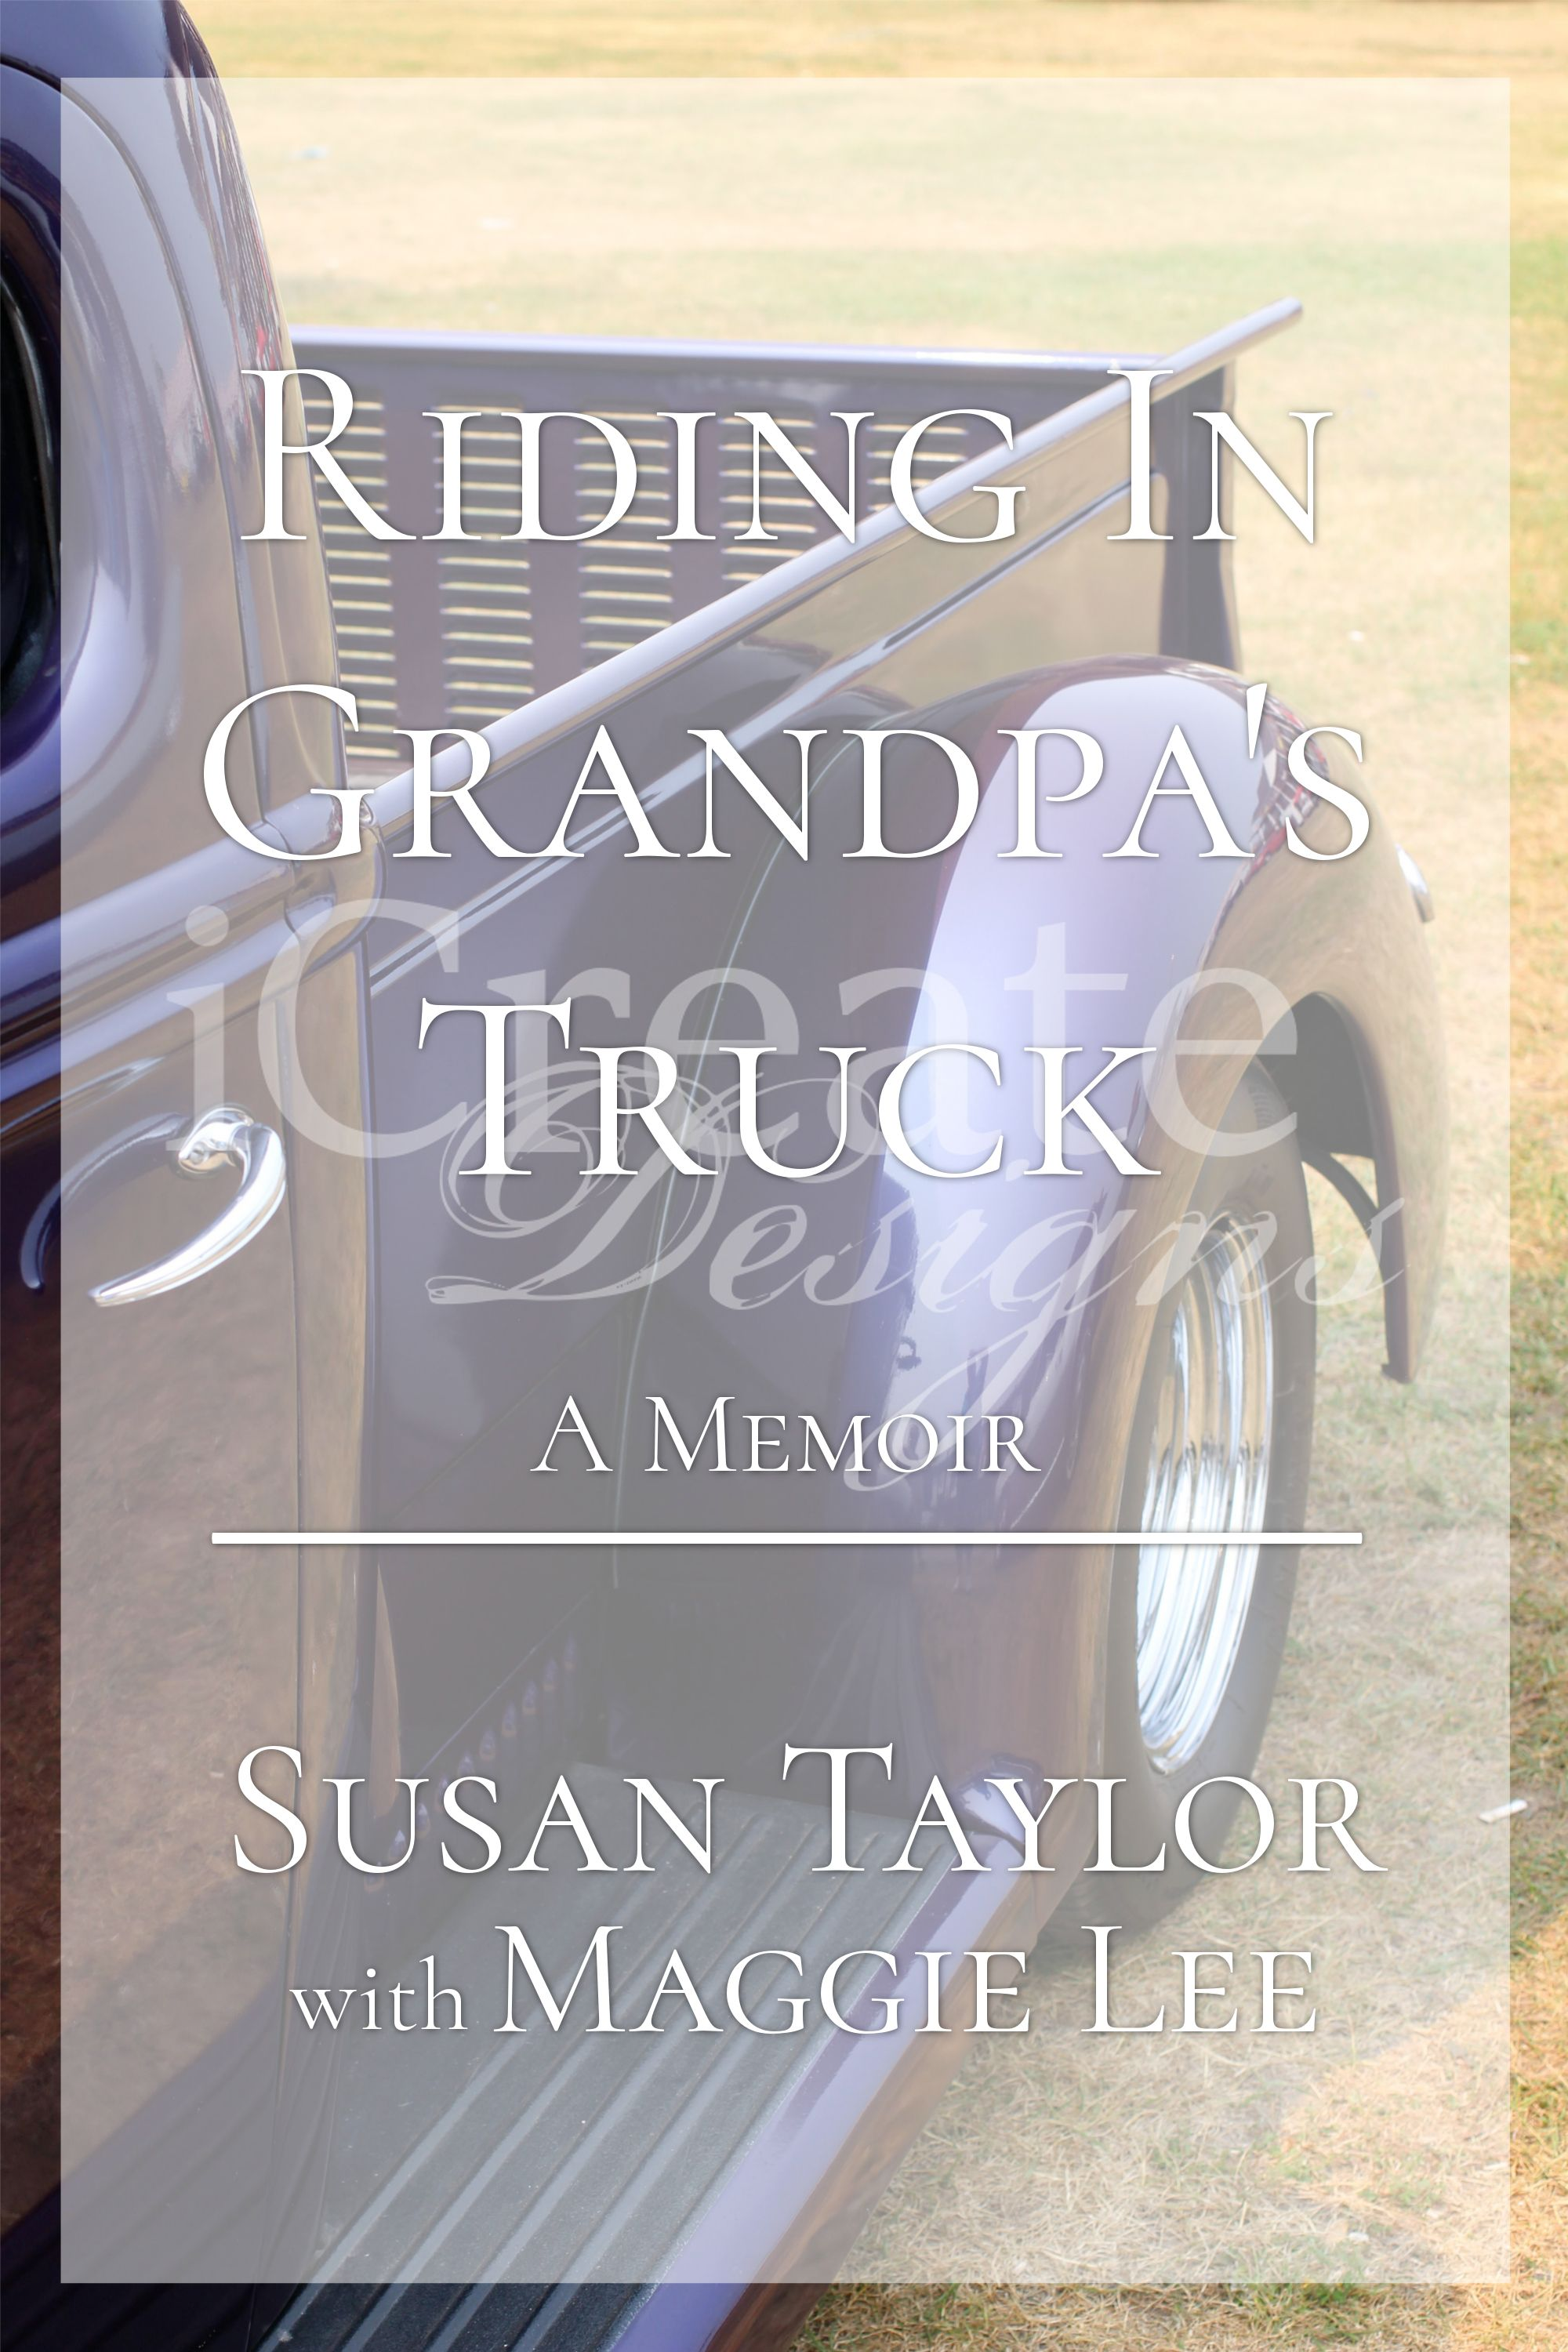 Riding in Grandpa's Truck: $50. #Premade #ebook #covers. #grandpa #grandchild #truck #history #story #legacy #grandfather #admiration #strength #peace #hope #love #friendship #faith #inspirational #memoir #biography #autobiography #nonfiction #book #Christian #clean #indie #author #writing